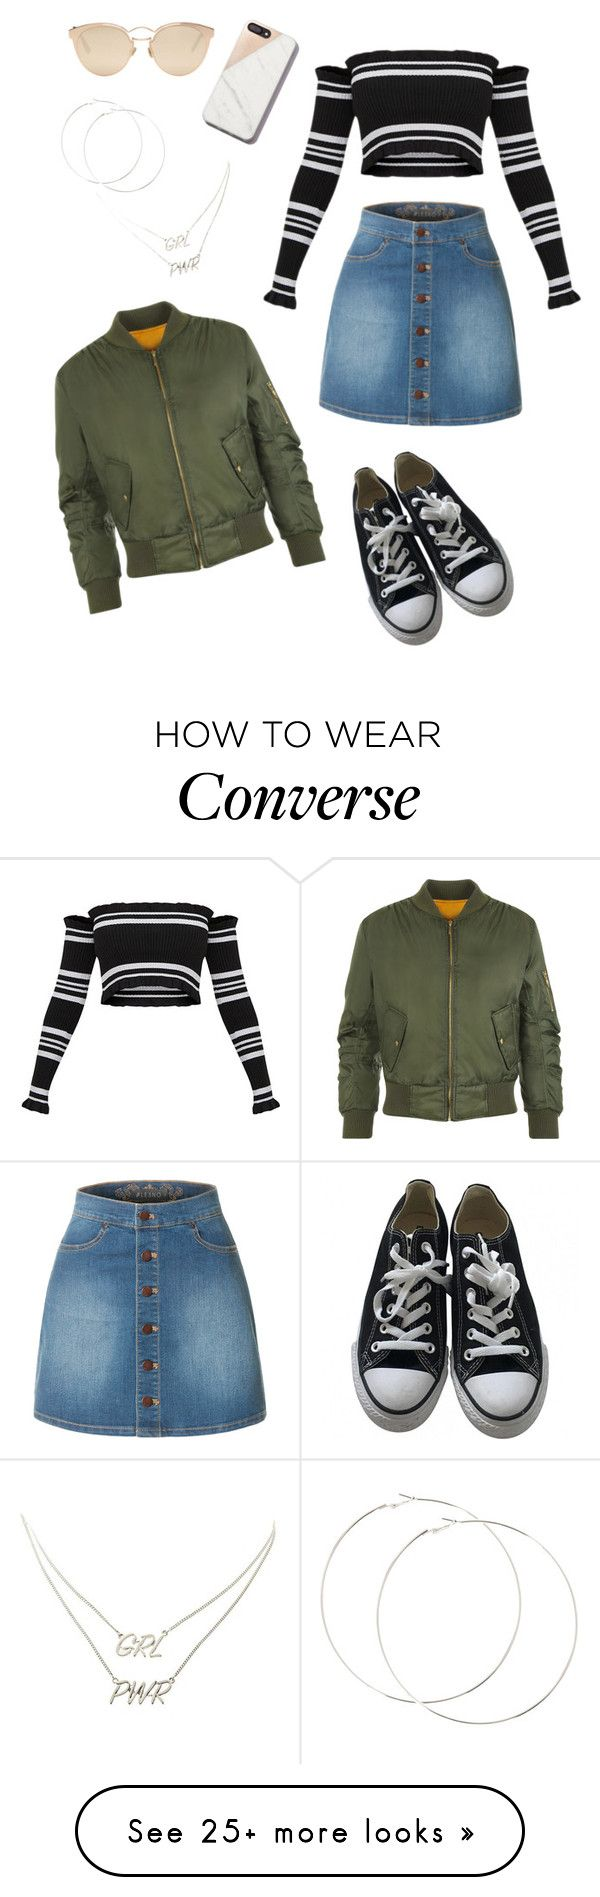 """Untitled #29"" by ashleigh-oxley on Polyvore featuring LE3NO, Converse, WearAll, Christian Dior, Charlotte Russe, casual, outfit and Trendy"